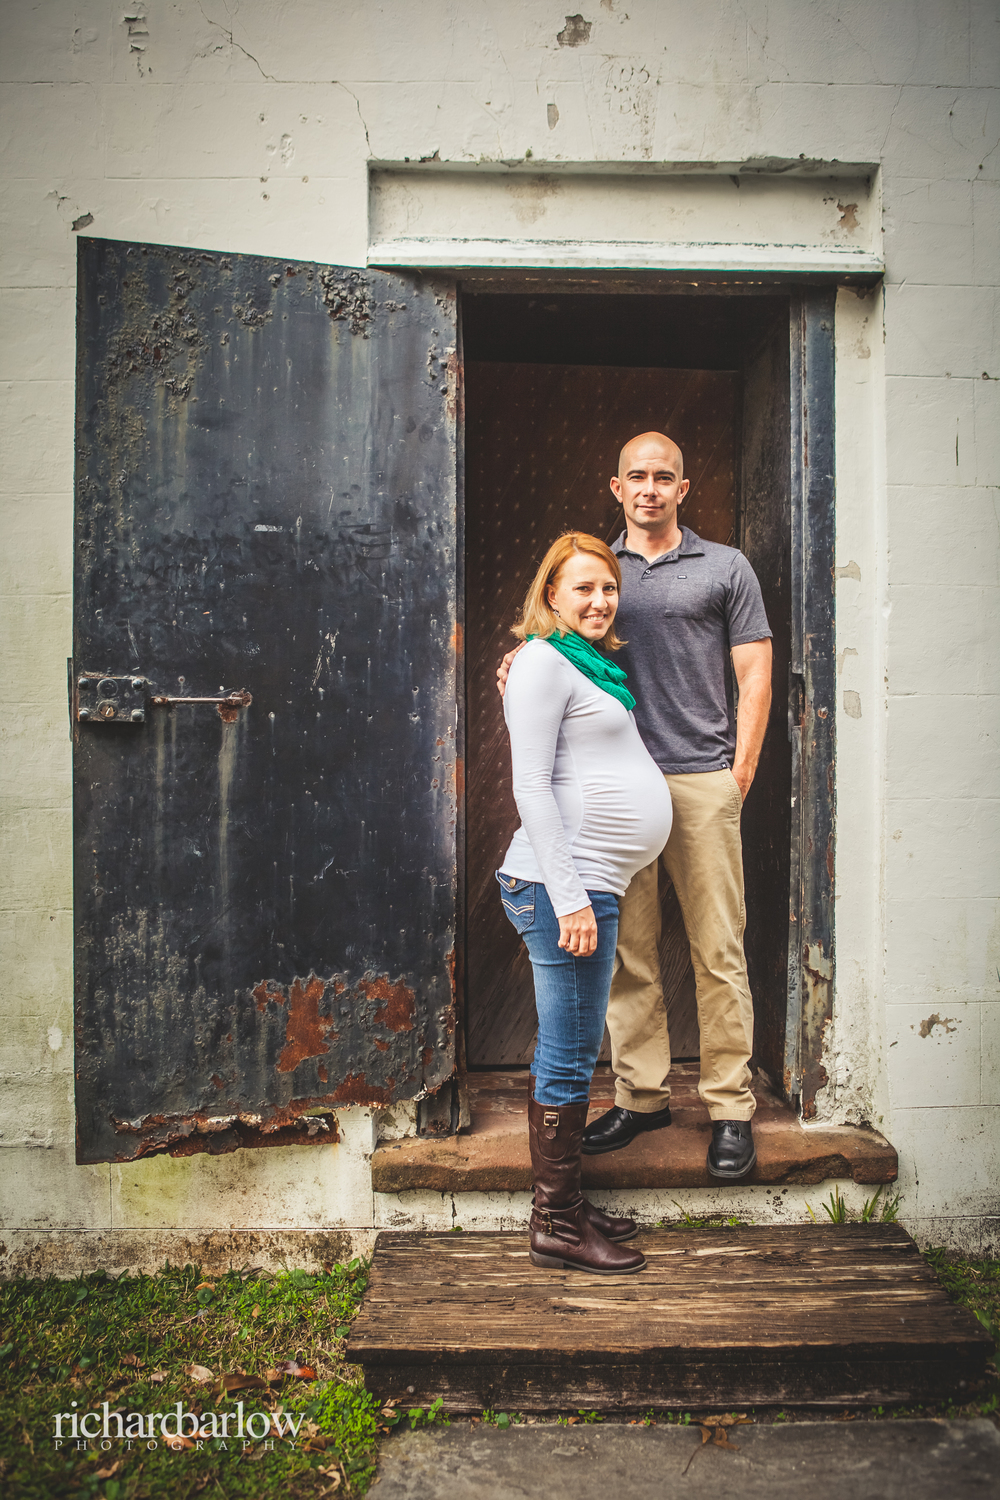 richard barlow photography - Sarah Maternity Session - Beaufort waterfront-10.jpg